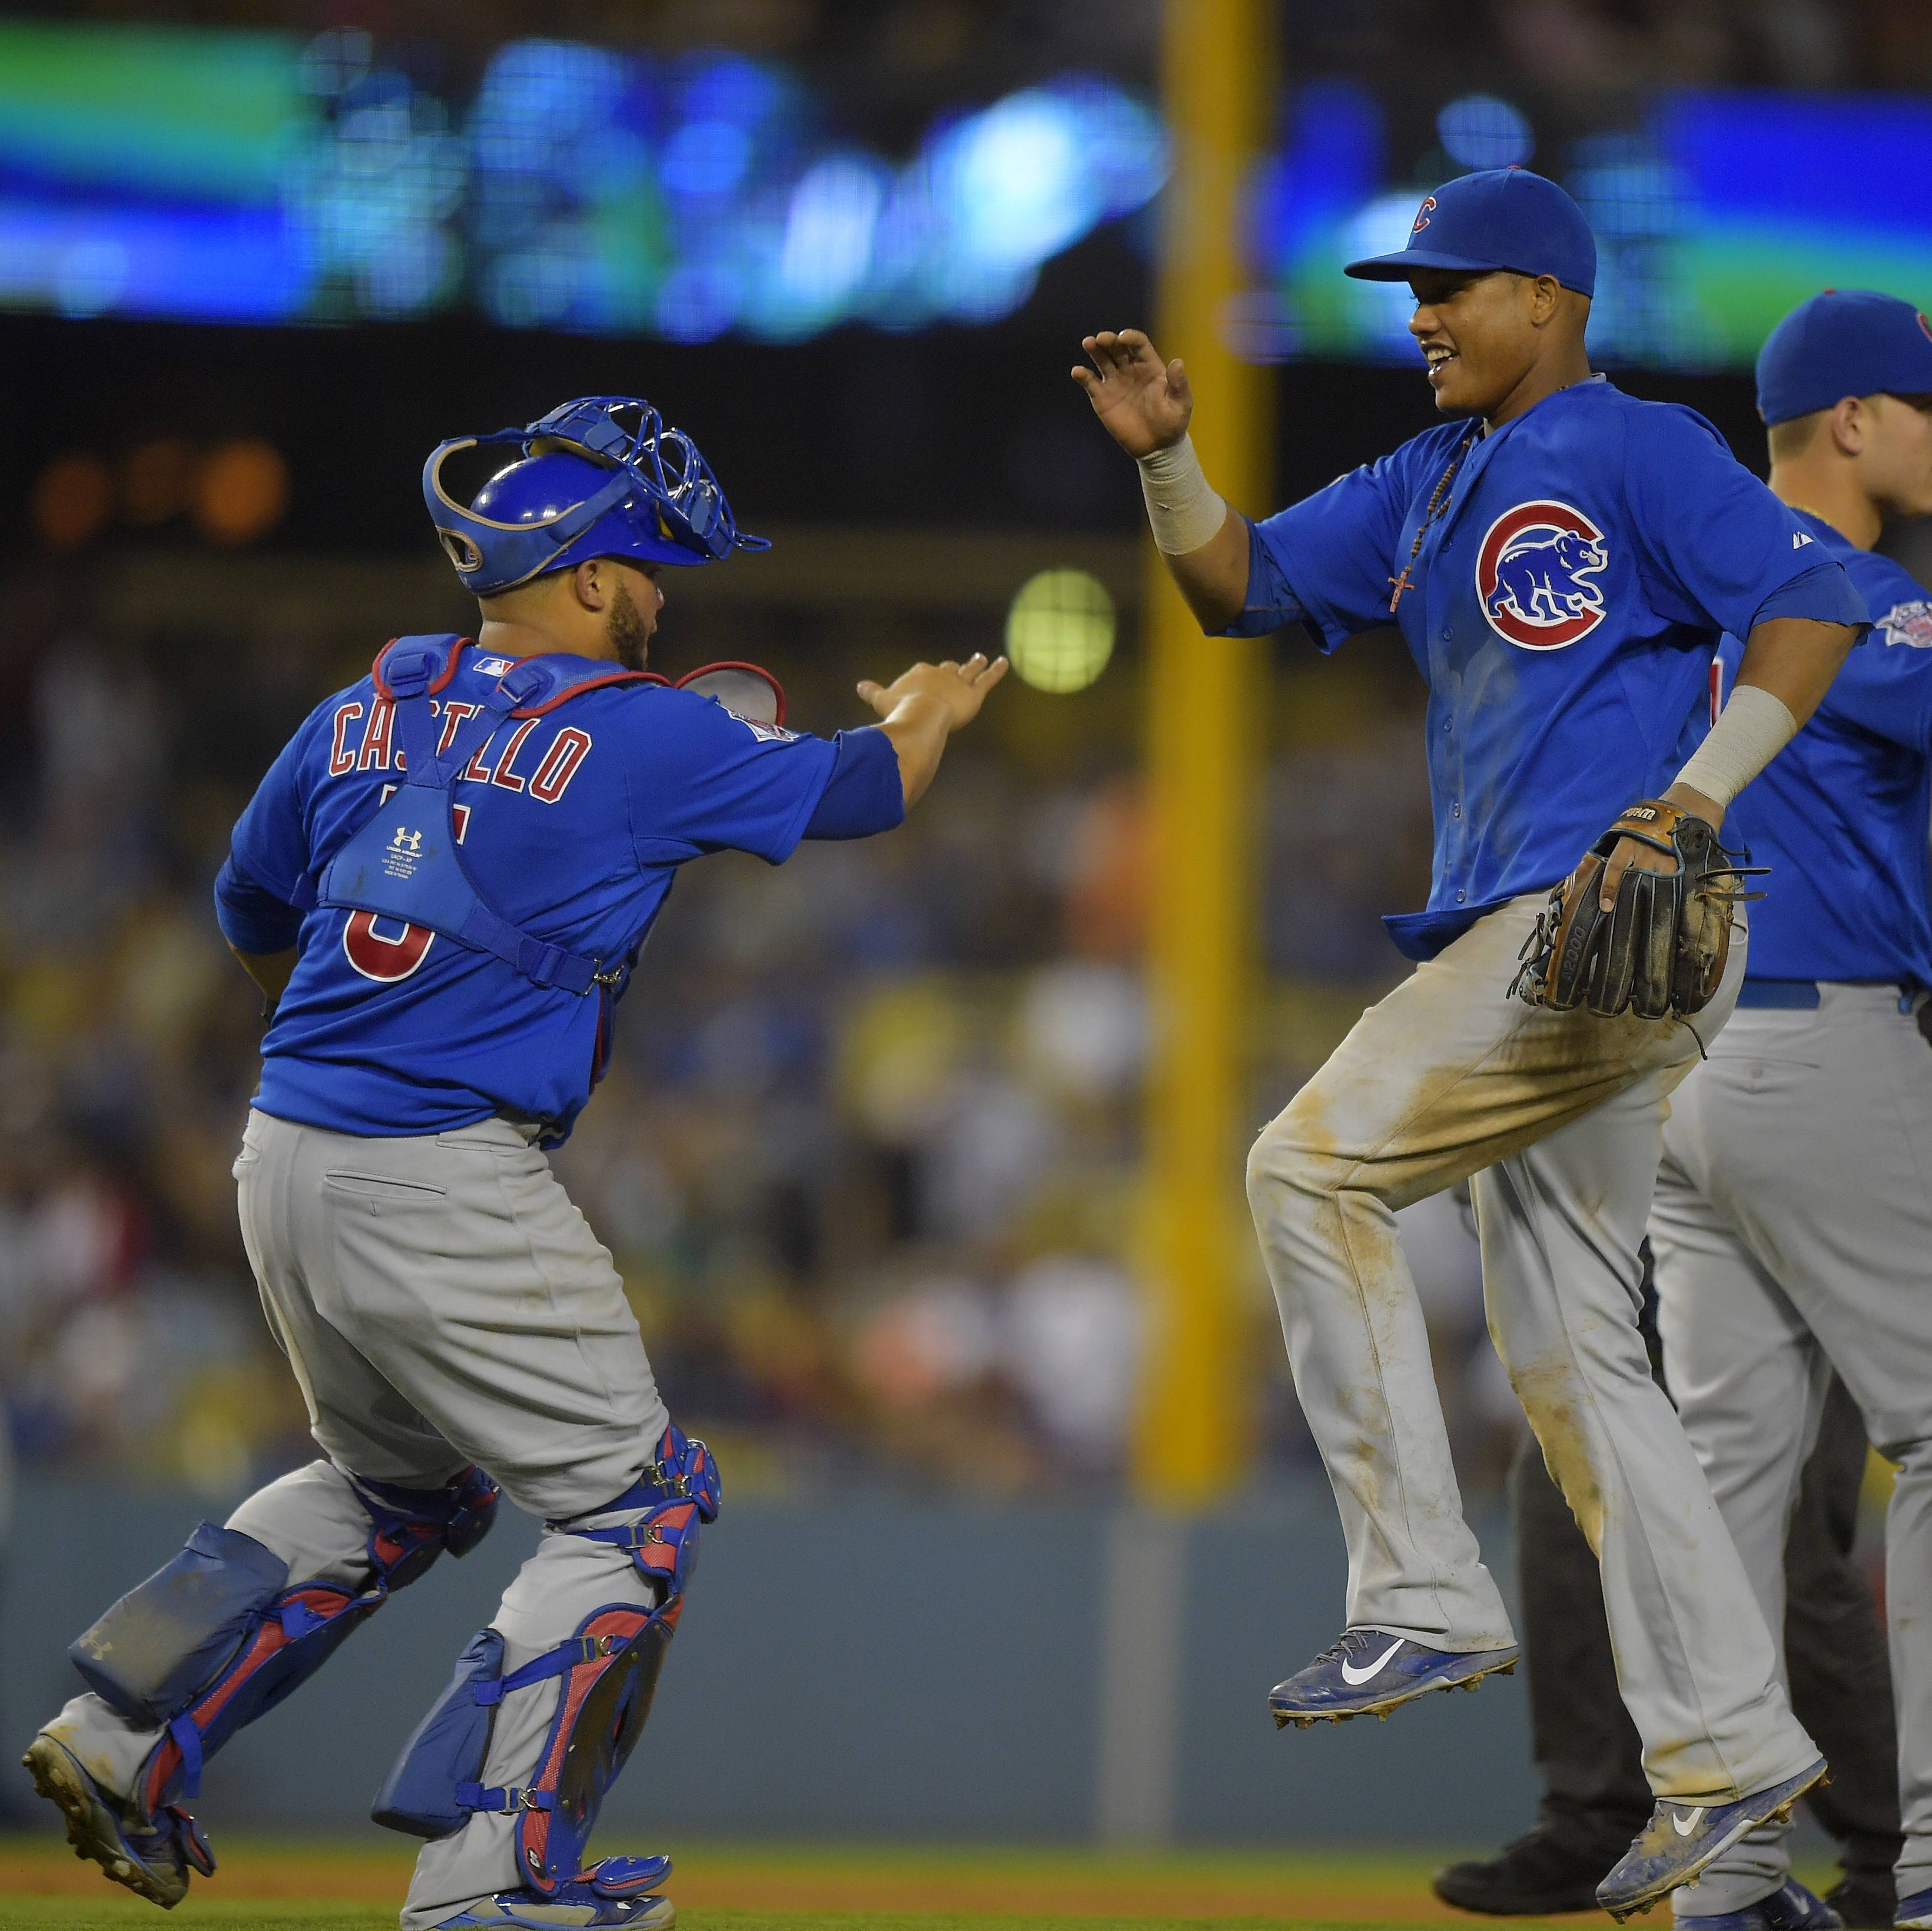 Cubs catcher Welington Castillo, left, and shortstop Starlin Castro celebrate after they defeated the Los Angeles Dodgers 8-2 in a baseball game, Friday, Aug. 1, 2014, in Los Angeles.